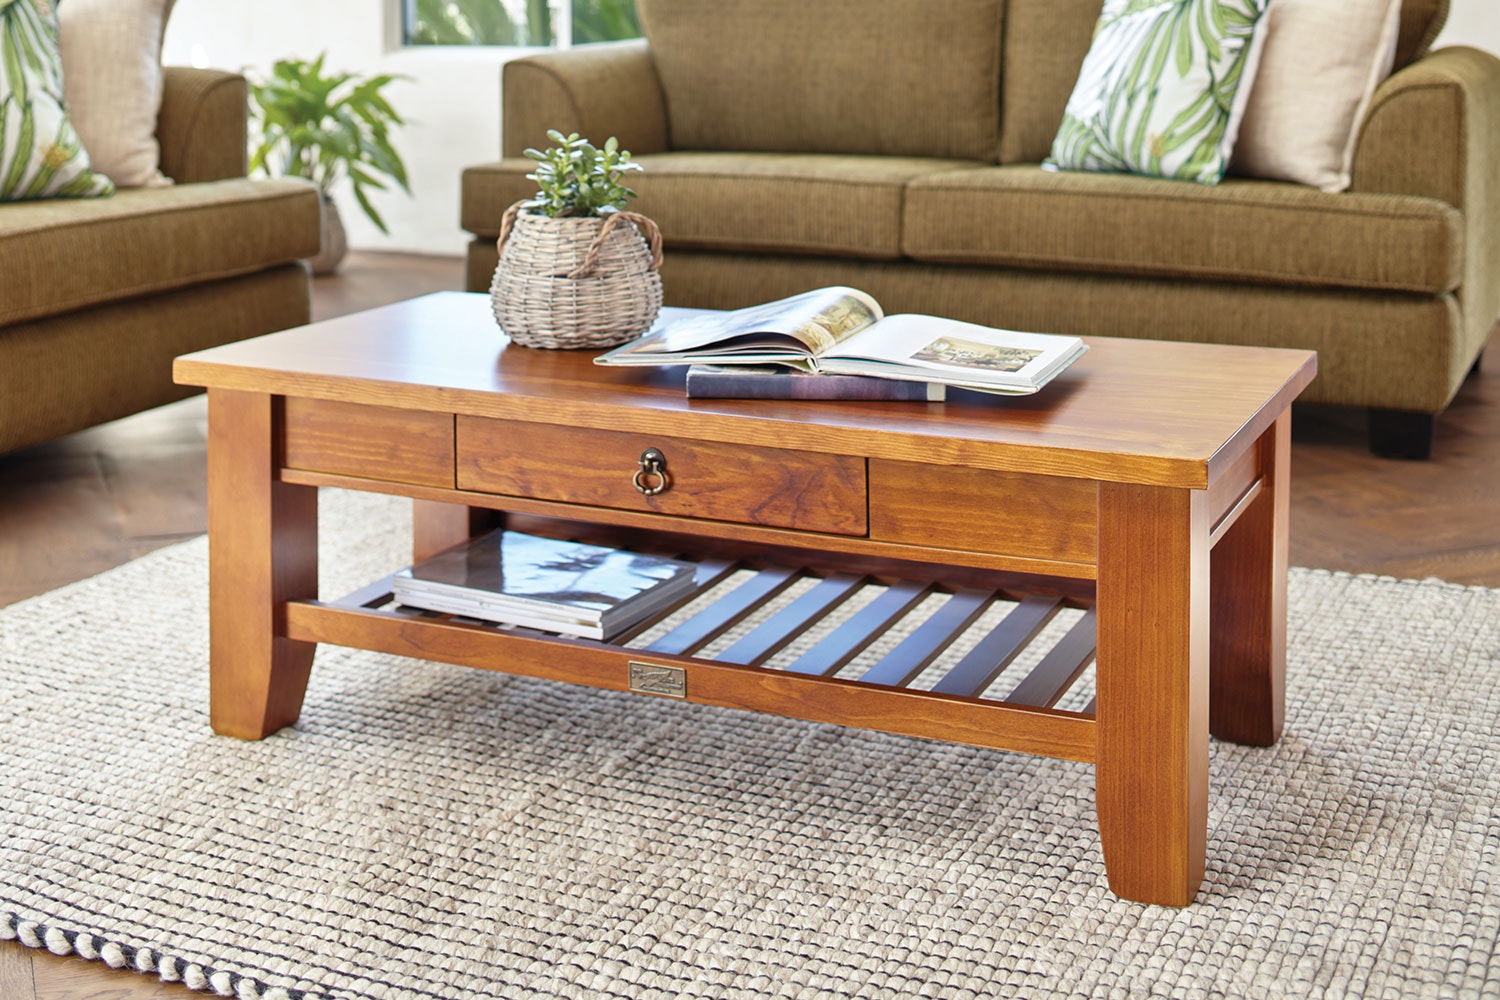 Ferngrove Coffee Table with Rack and Drawer by Coastwood Furniture